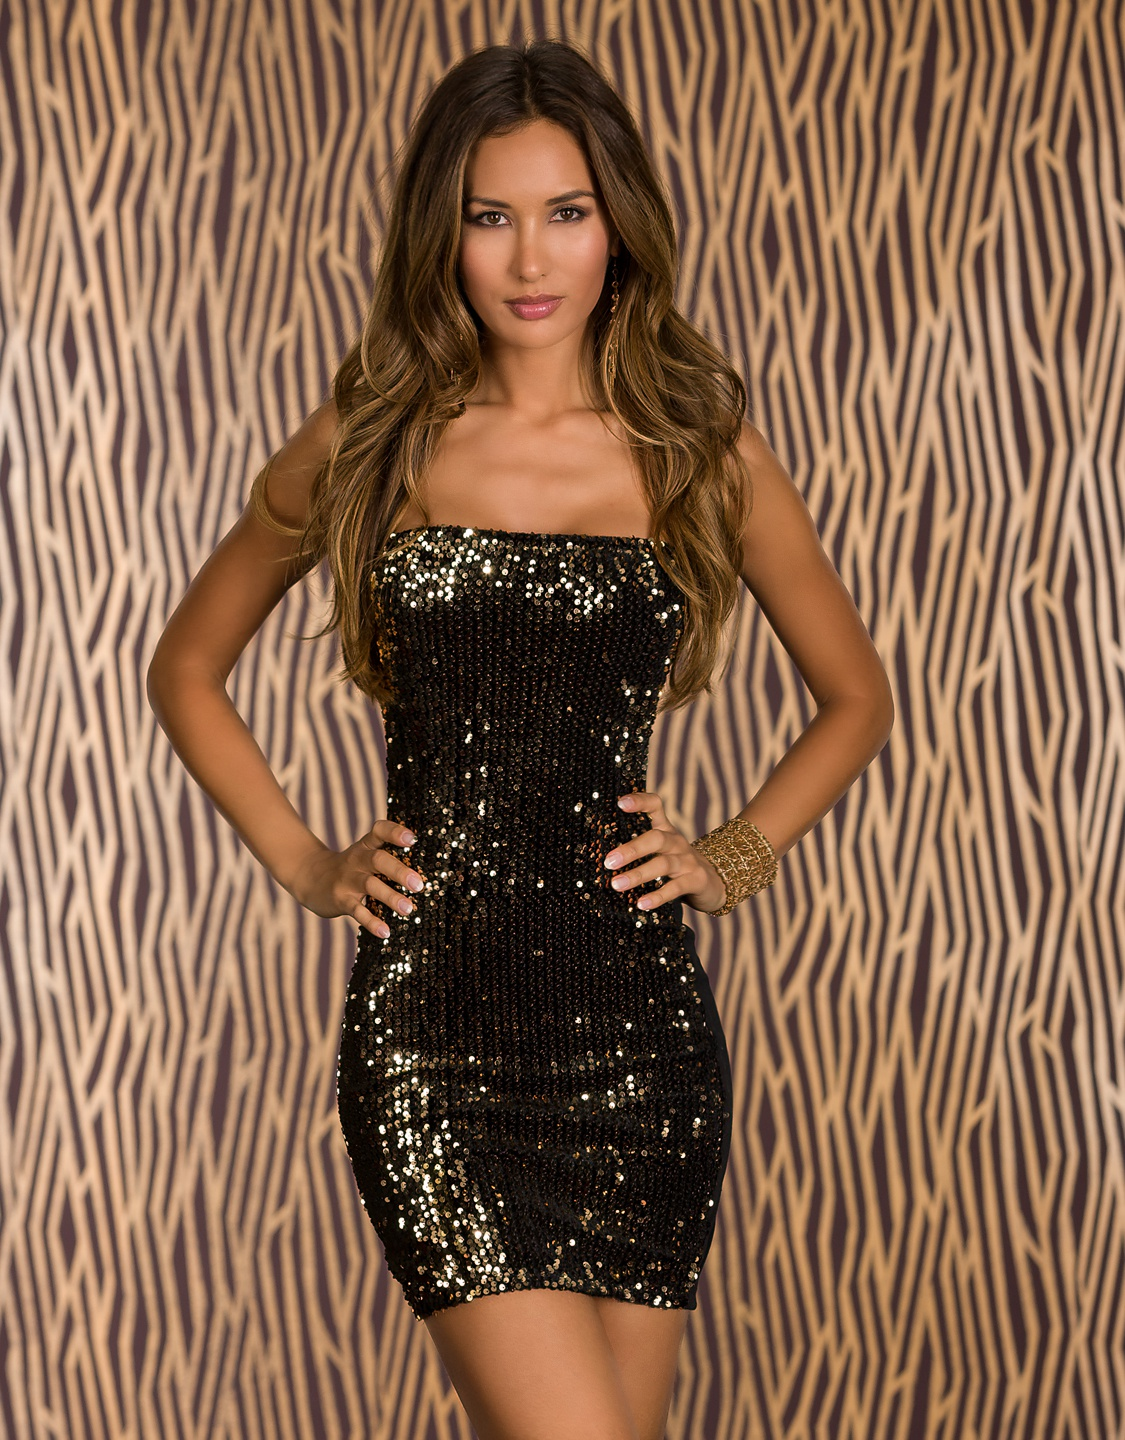 Black-Gold Strapless Club Dress With Sequined Front